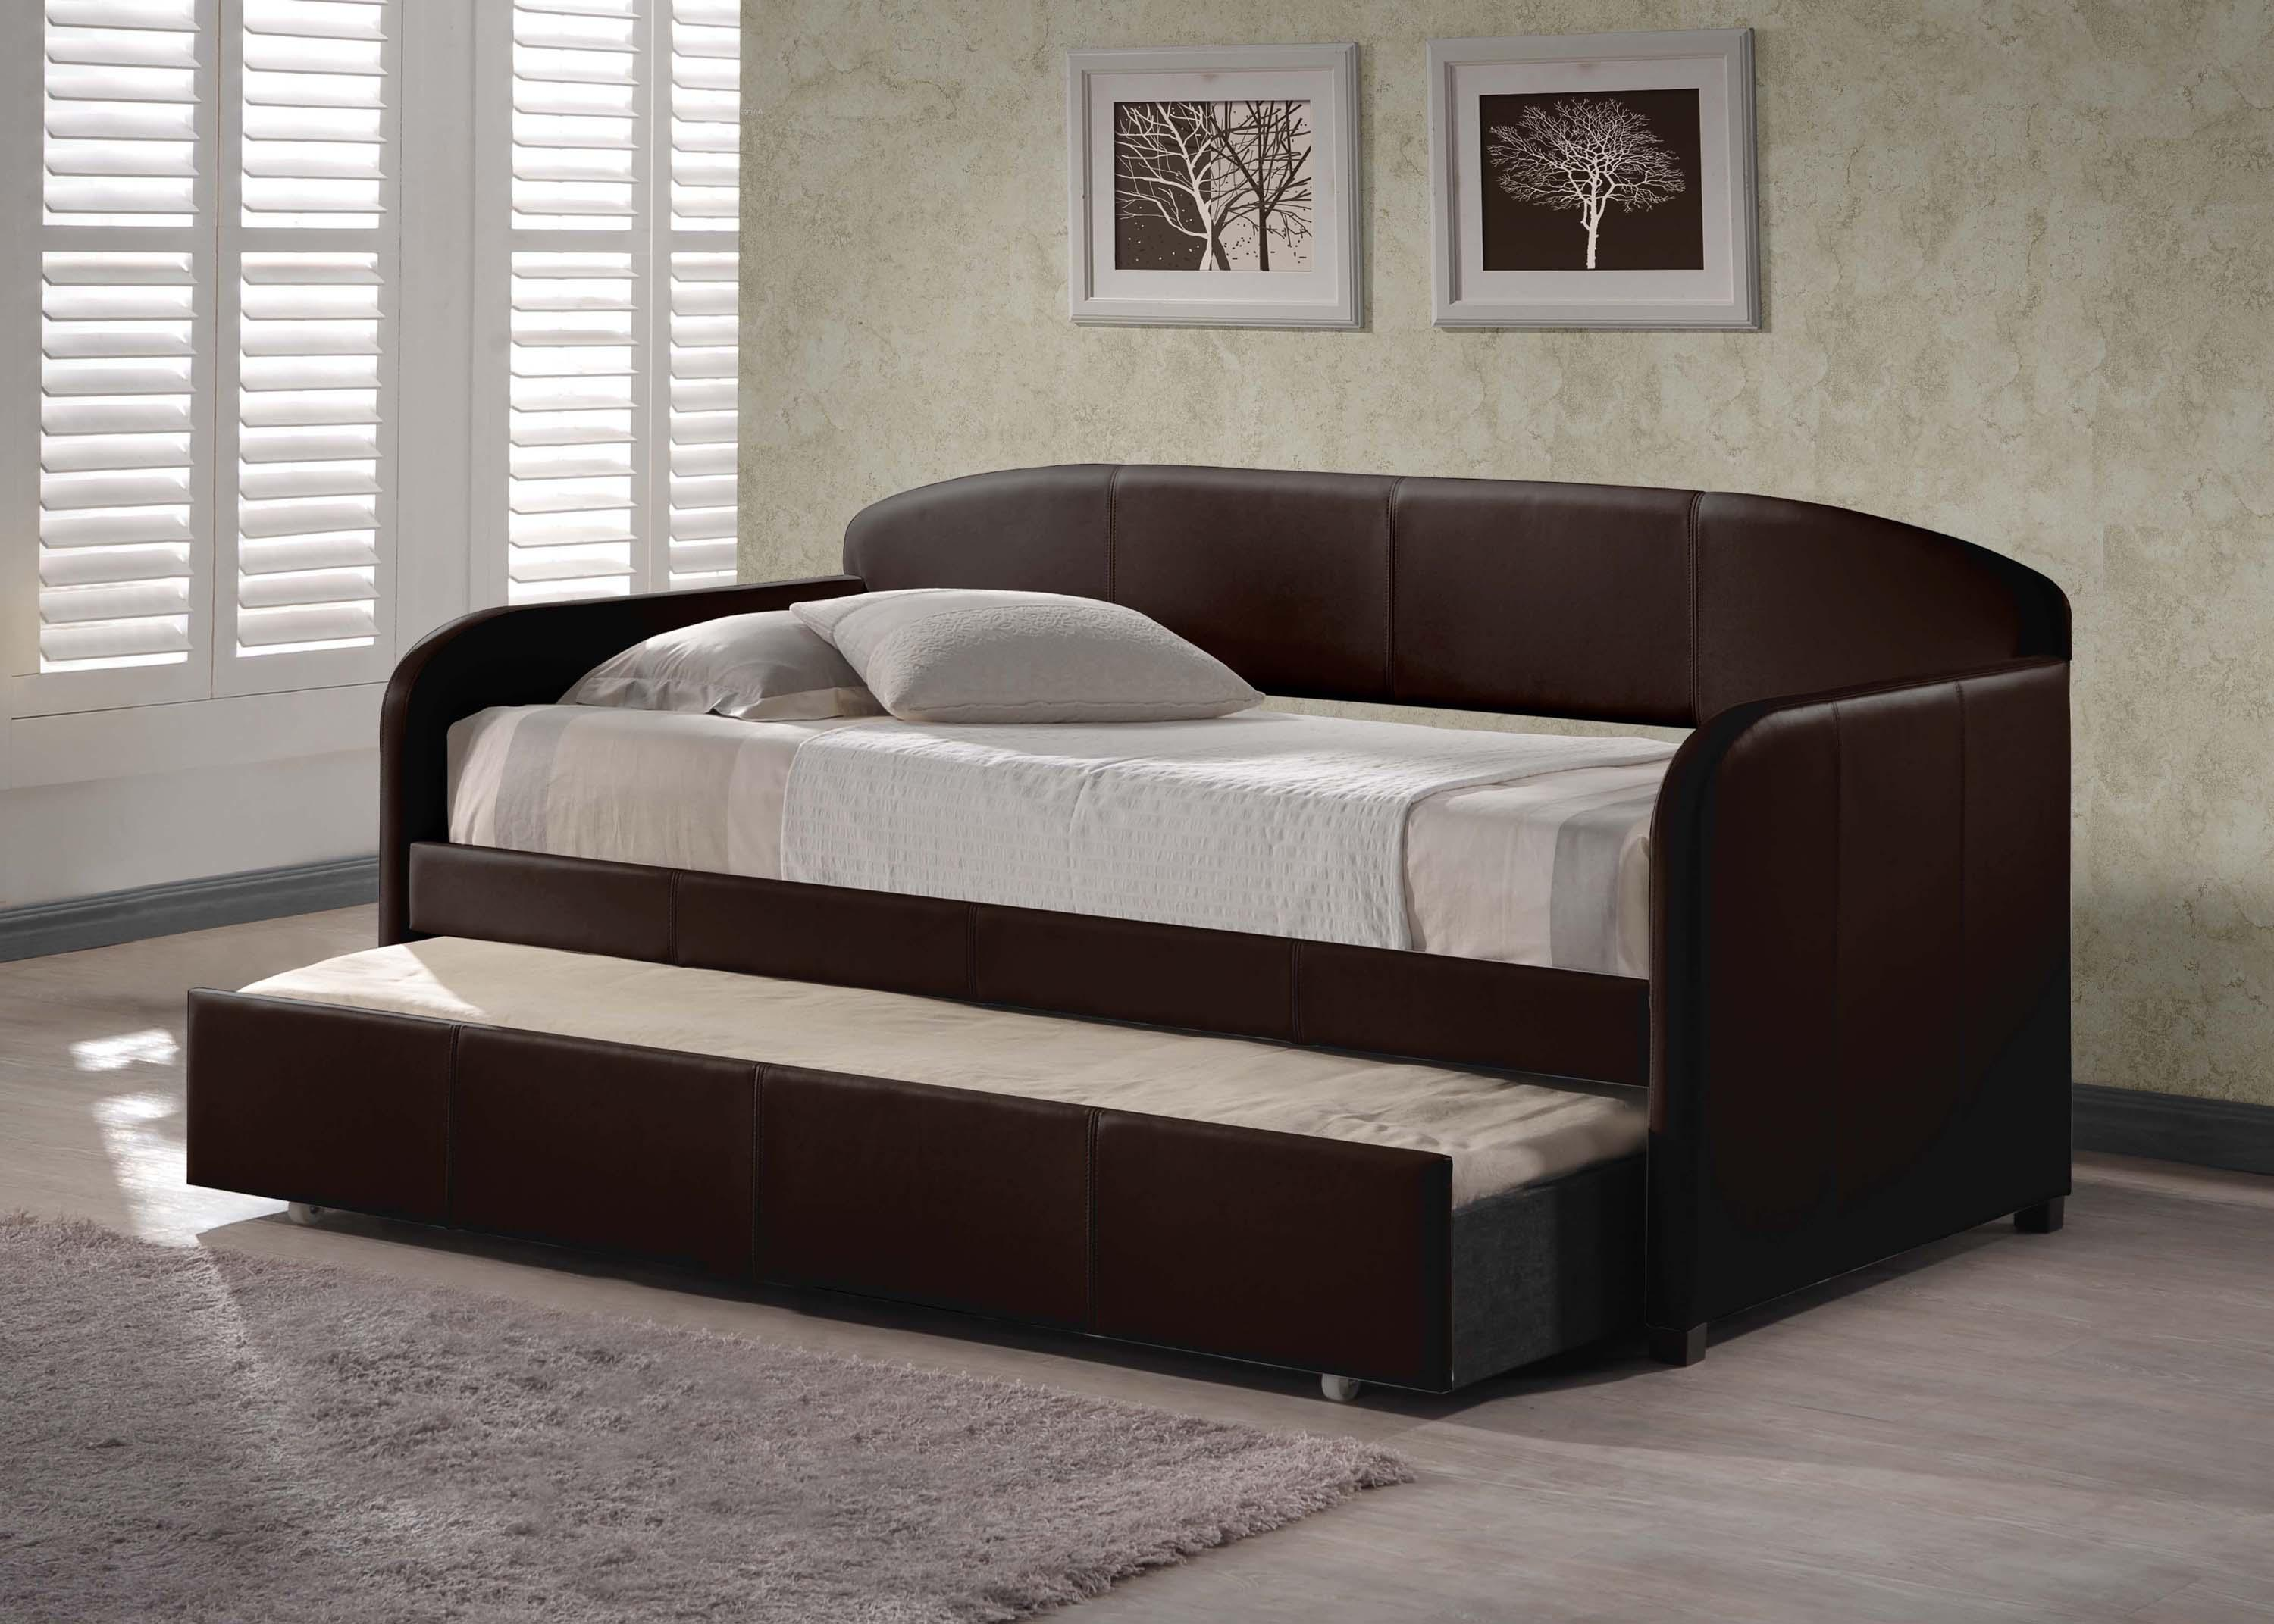 Trundle Bed Pop Up Beautiful White Daybed With Pop Up